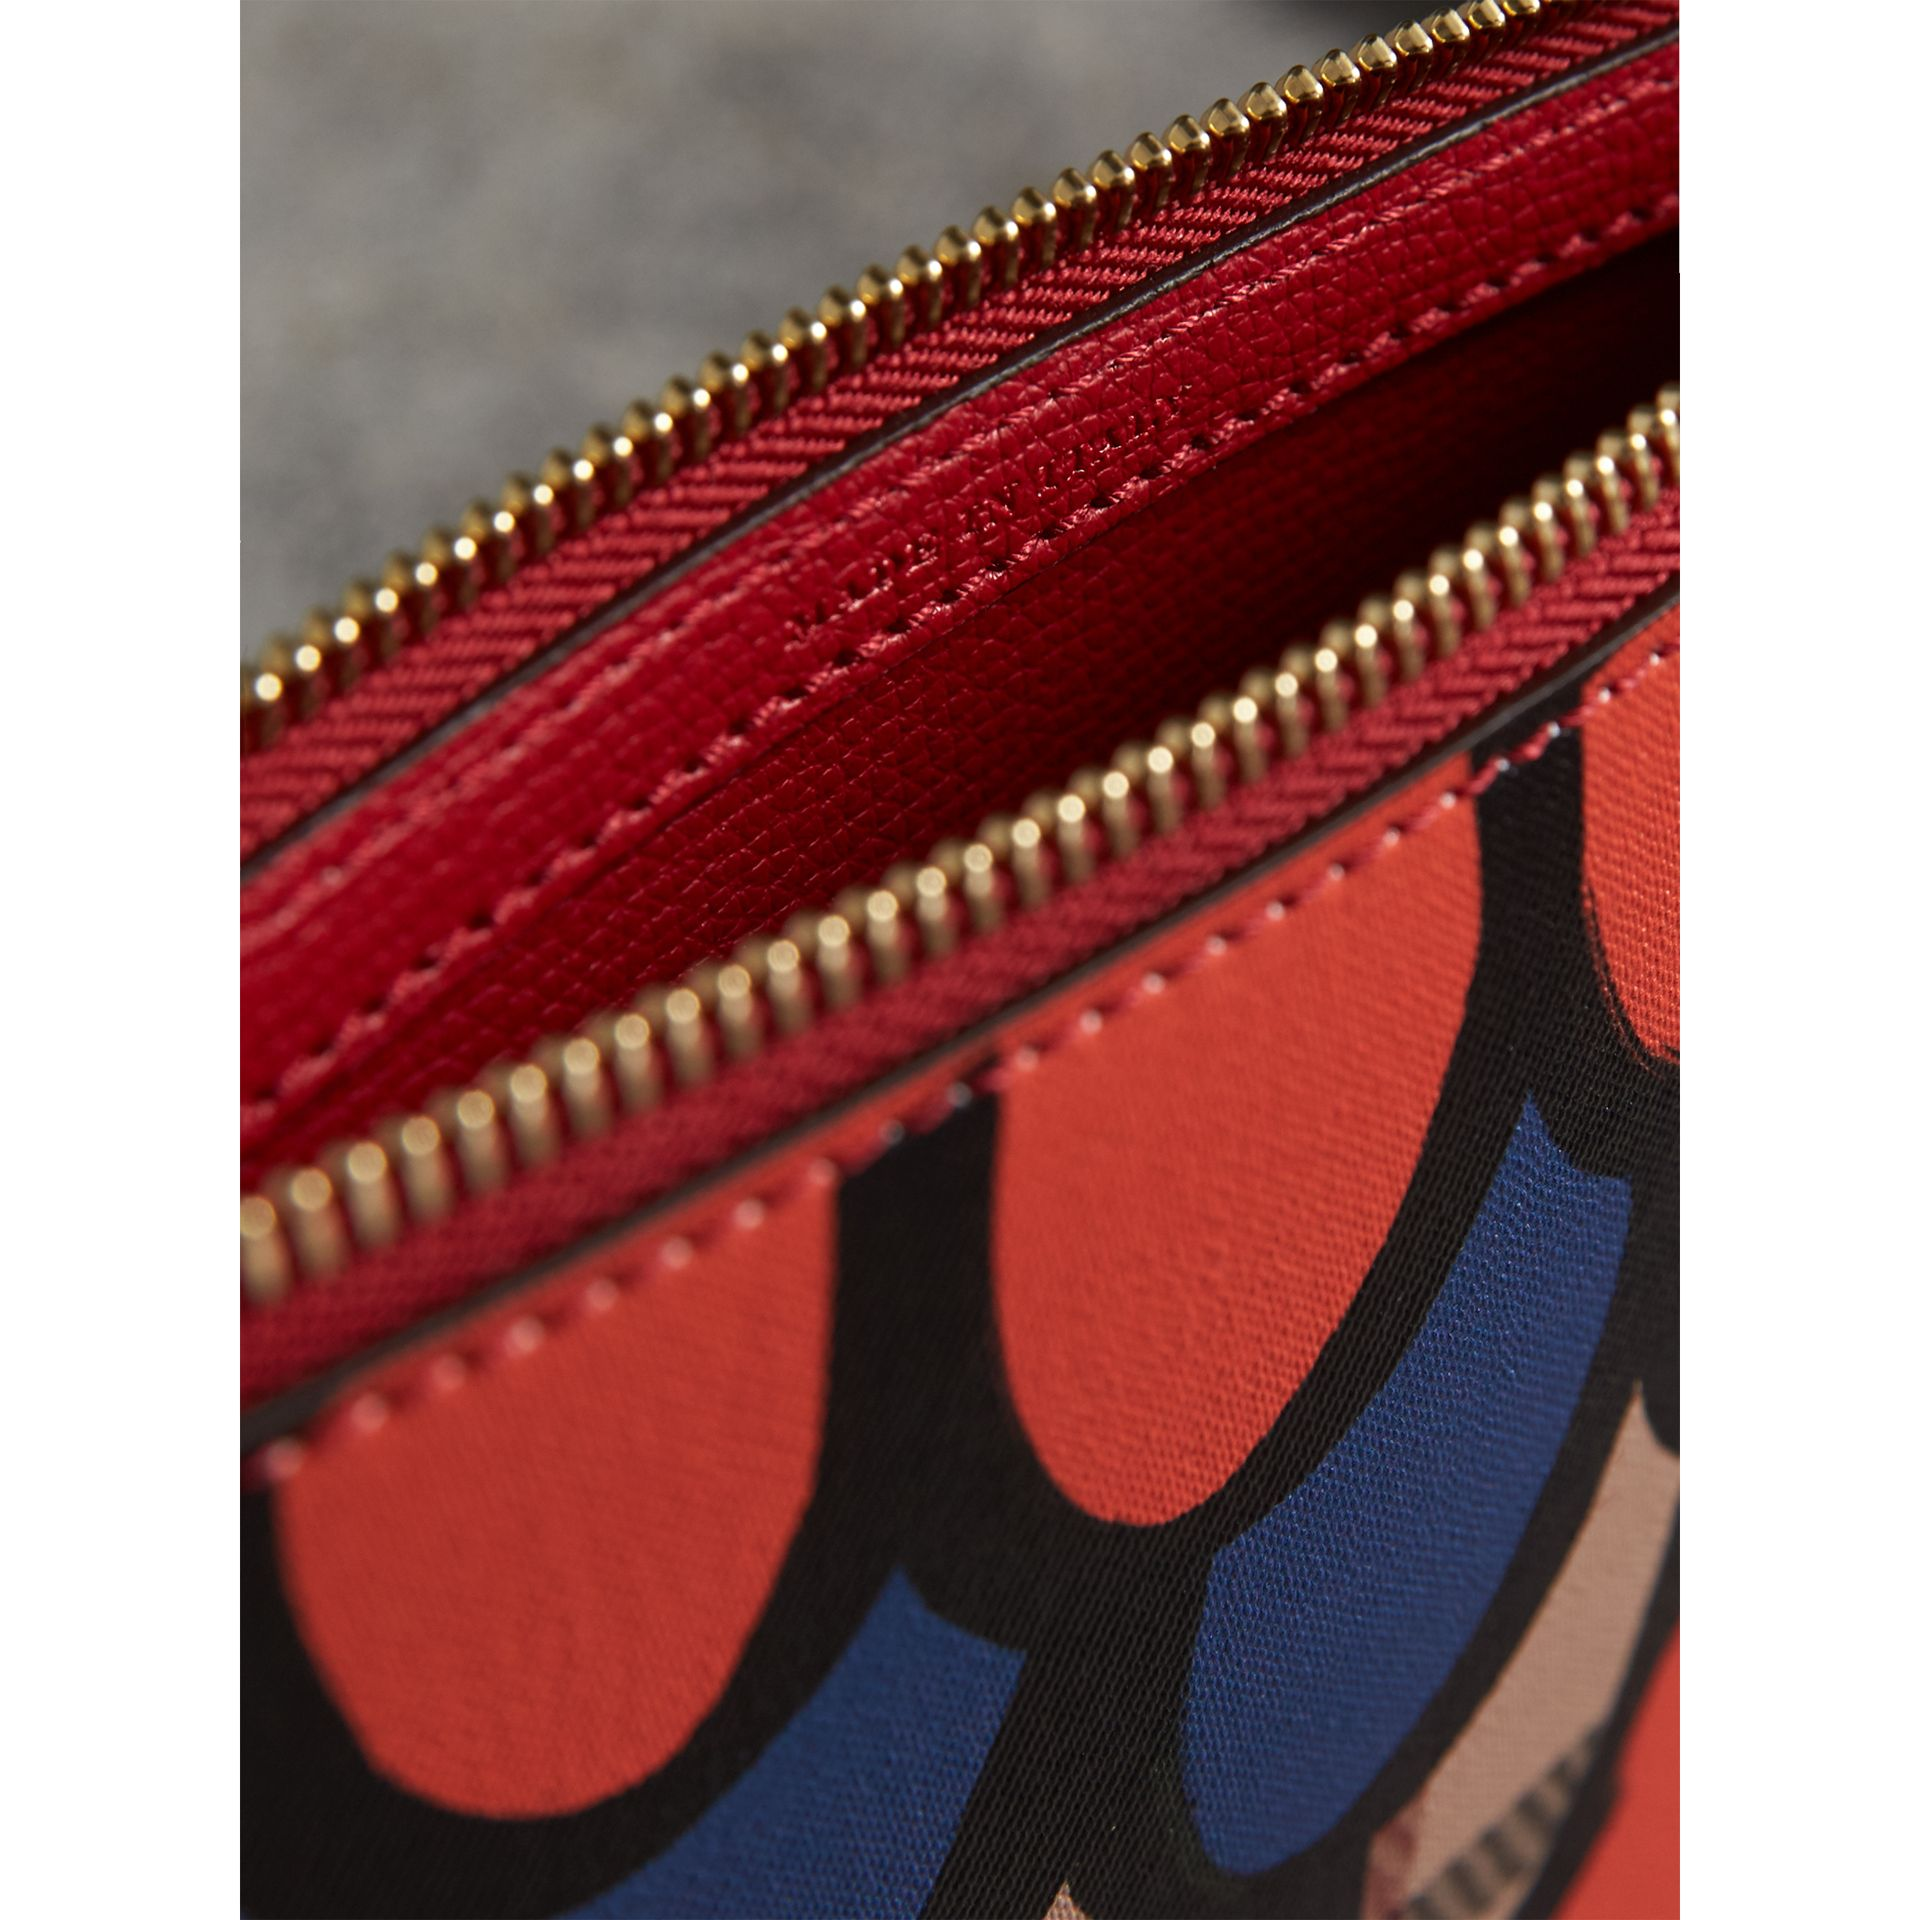 Scallop Print Haymarket Check and Leather Pouch in Poppy Red - Women | Burberry Canada - gallery image 4